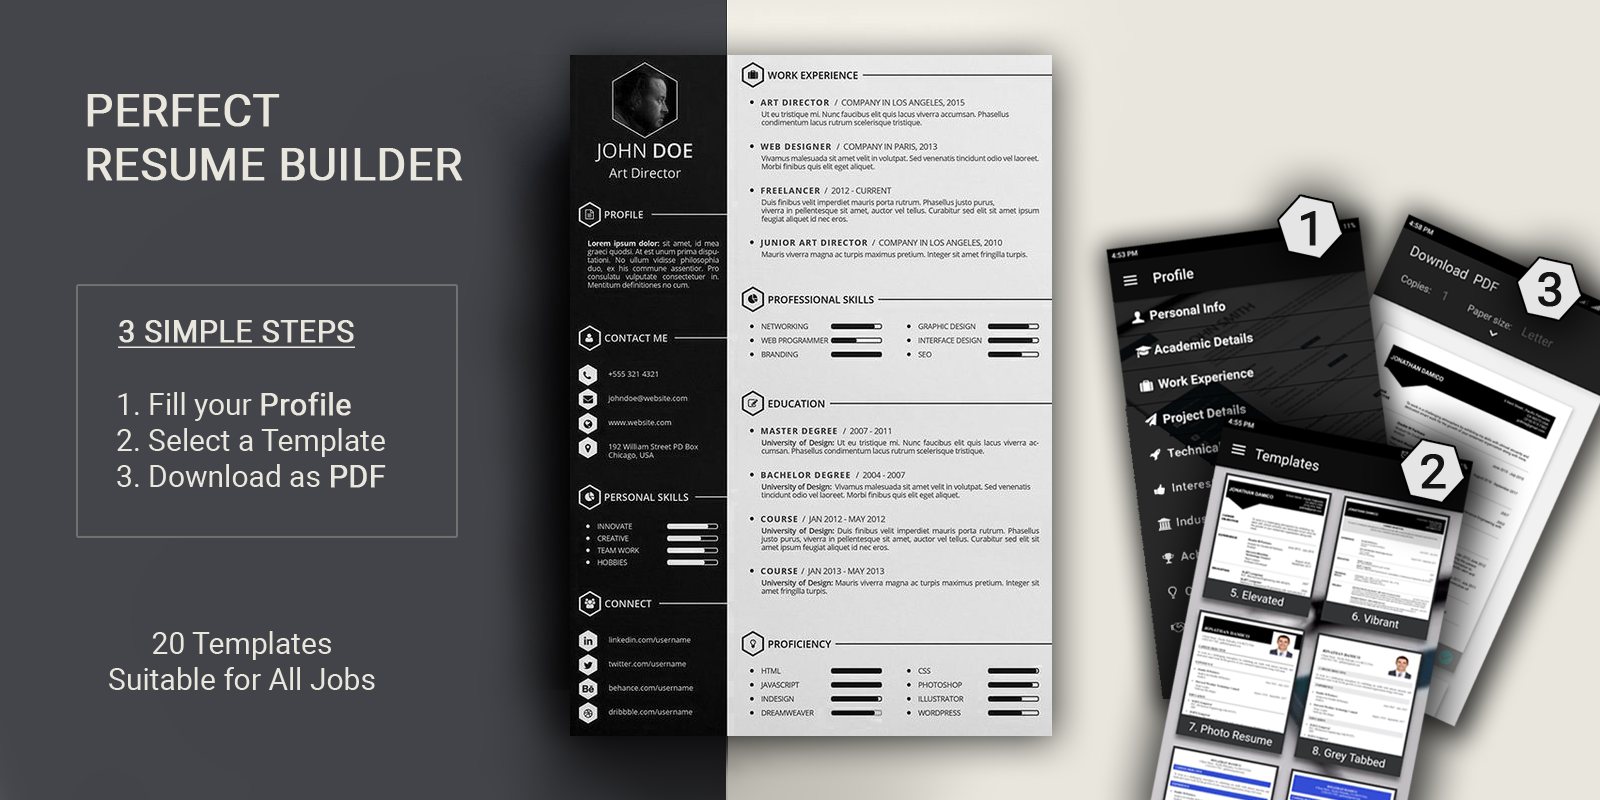 Free resume builder PDF formats CV maker templates - Android Apps ...